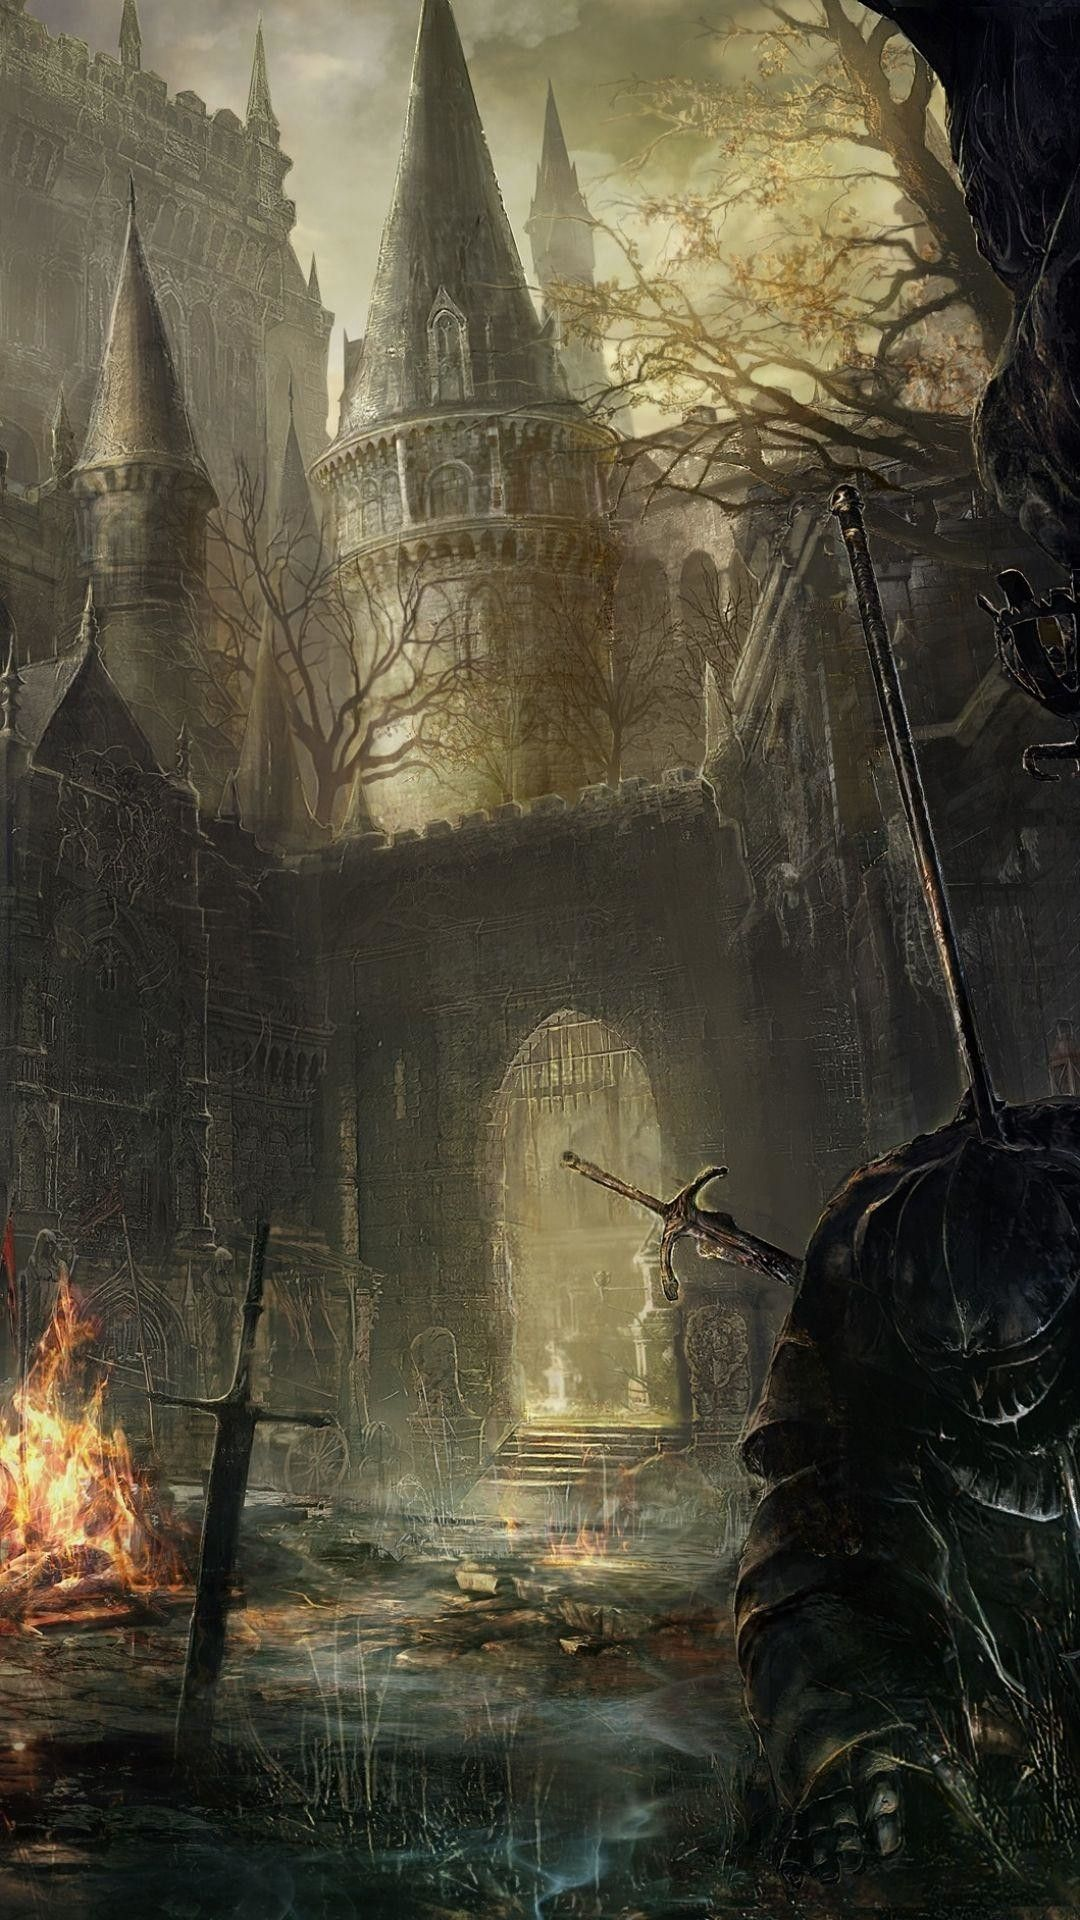 RANDOM PHONE WALLPAPER Dark souls, Of wallpaper, Papel